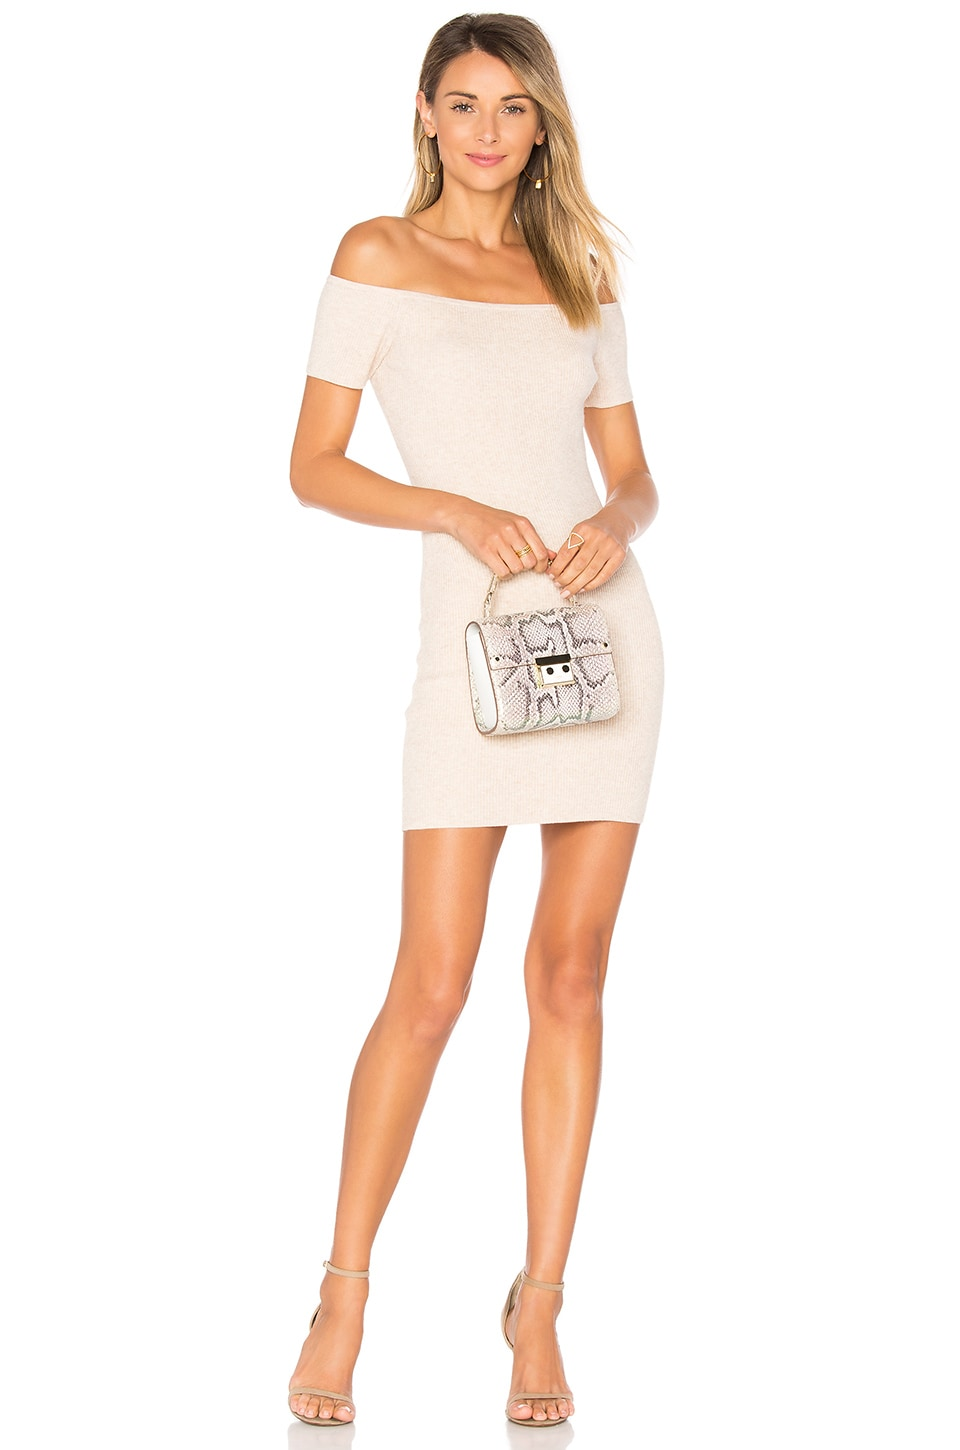 Lovers + Friends Diamond Dress in Nude